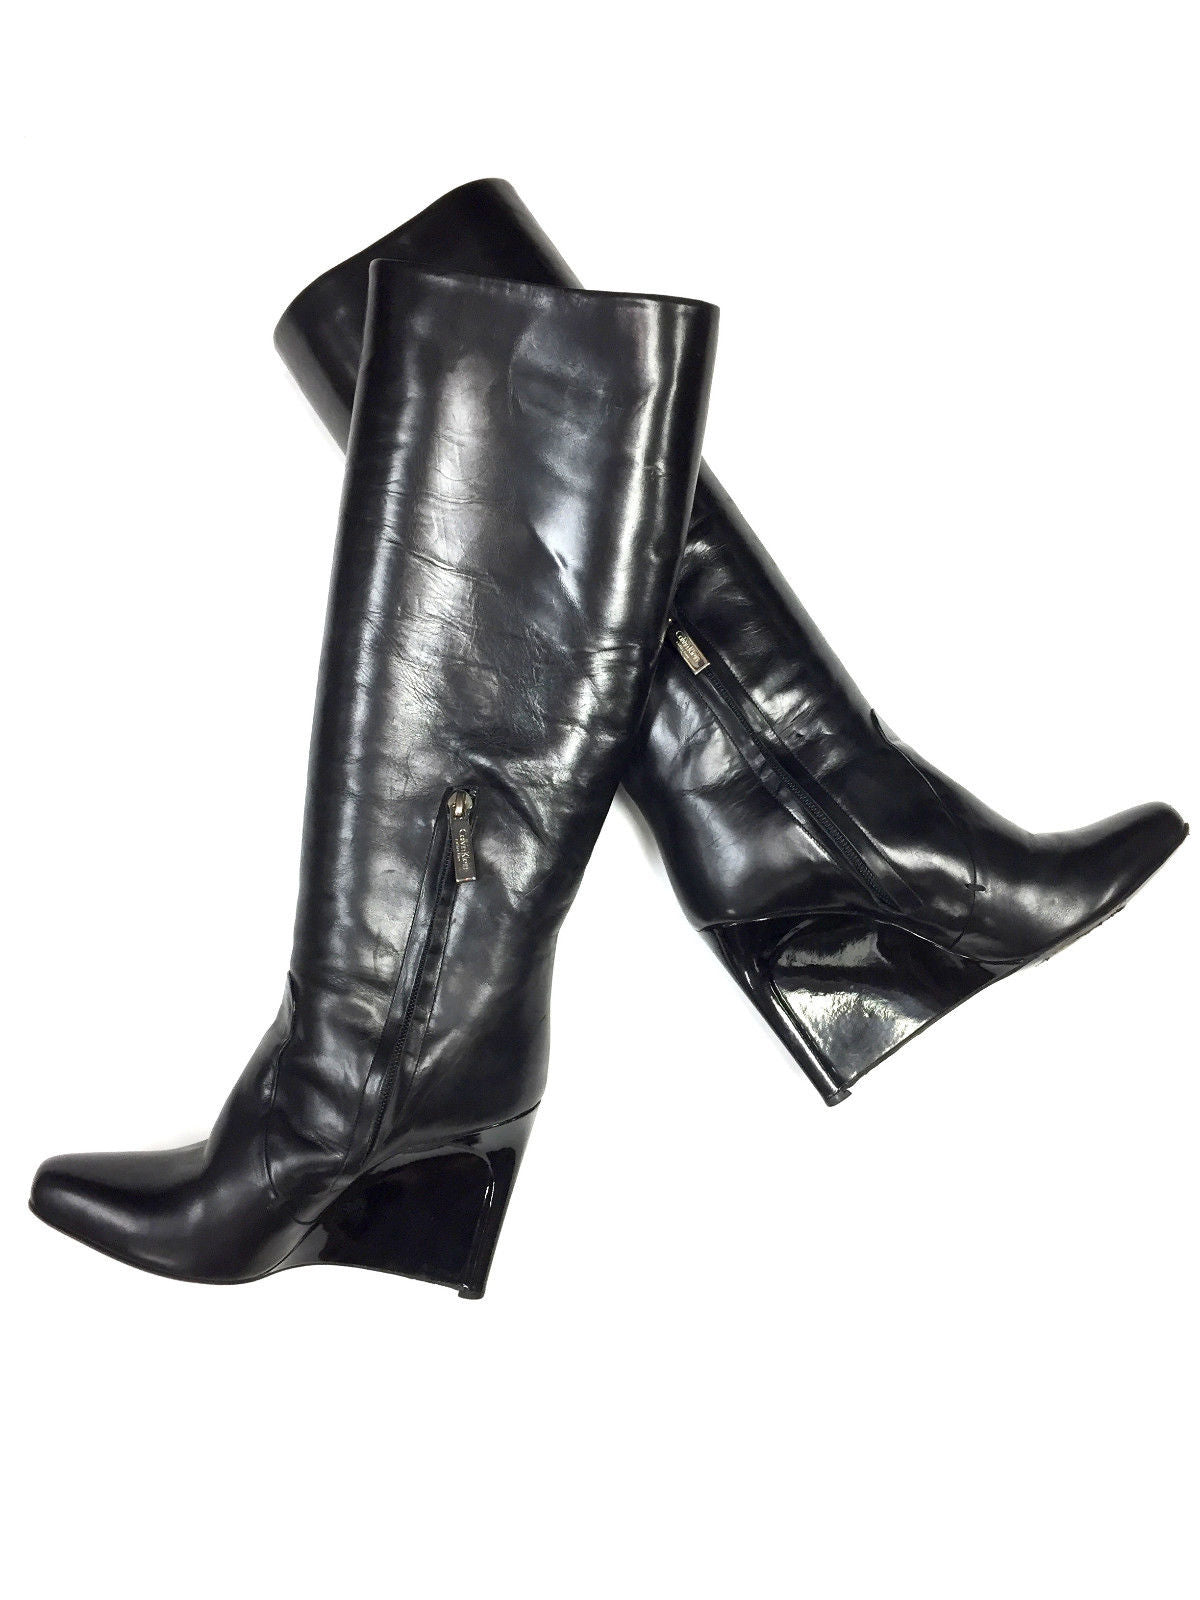 dffb70bf222 ... bisbiz.com CALVIN KLEIN COLLECTION Black Leather Patent Leather Wedge  Heels Tall Boots Size  ...